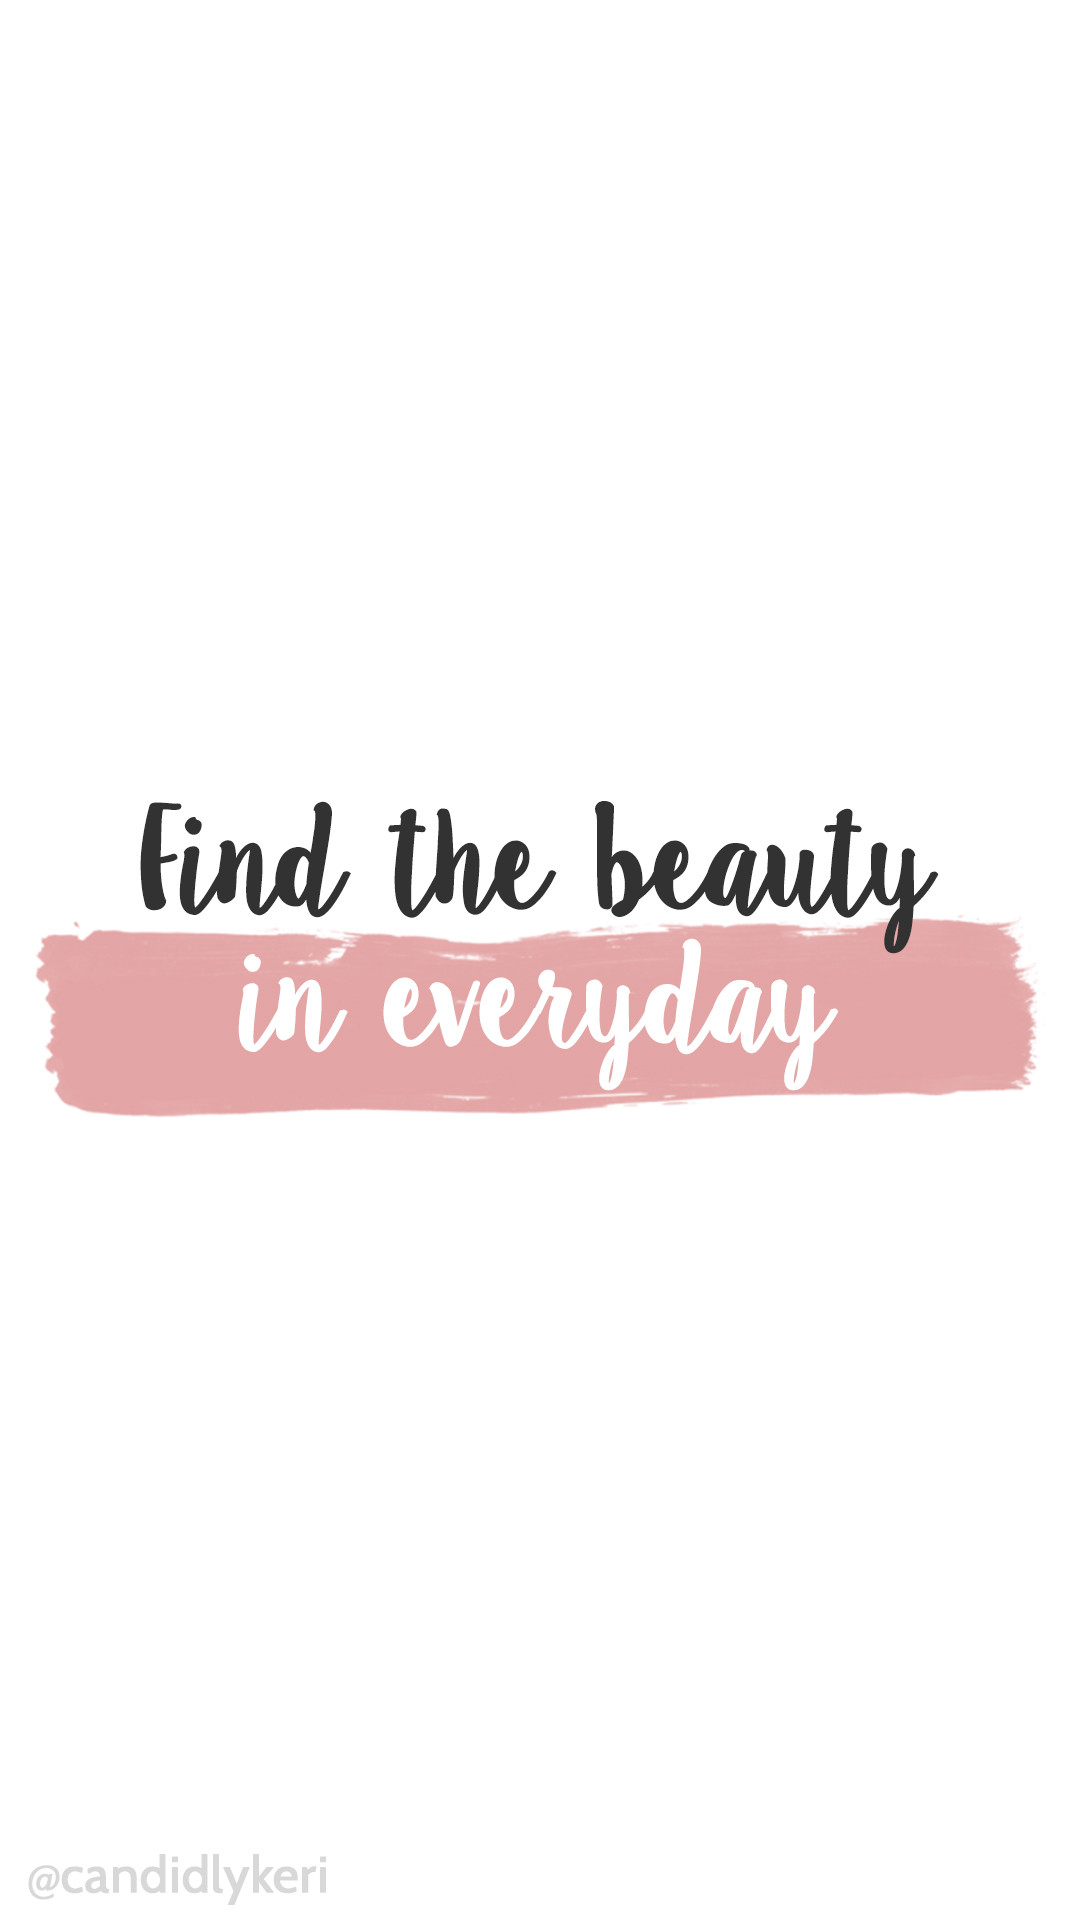 1080x1920 Find the beauty in every day pink watercolor paint stripe background  wallpaper you can download for · Cute BackgroundsPhone BackgroundsIphone ...